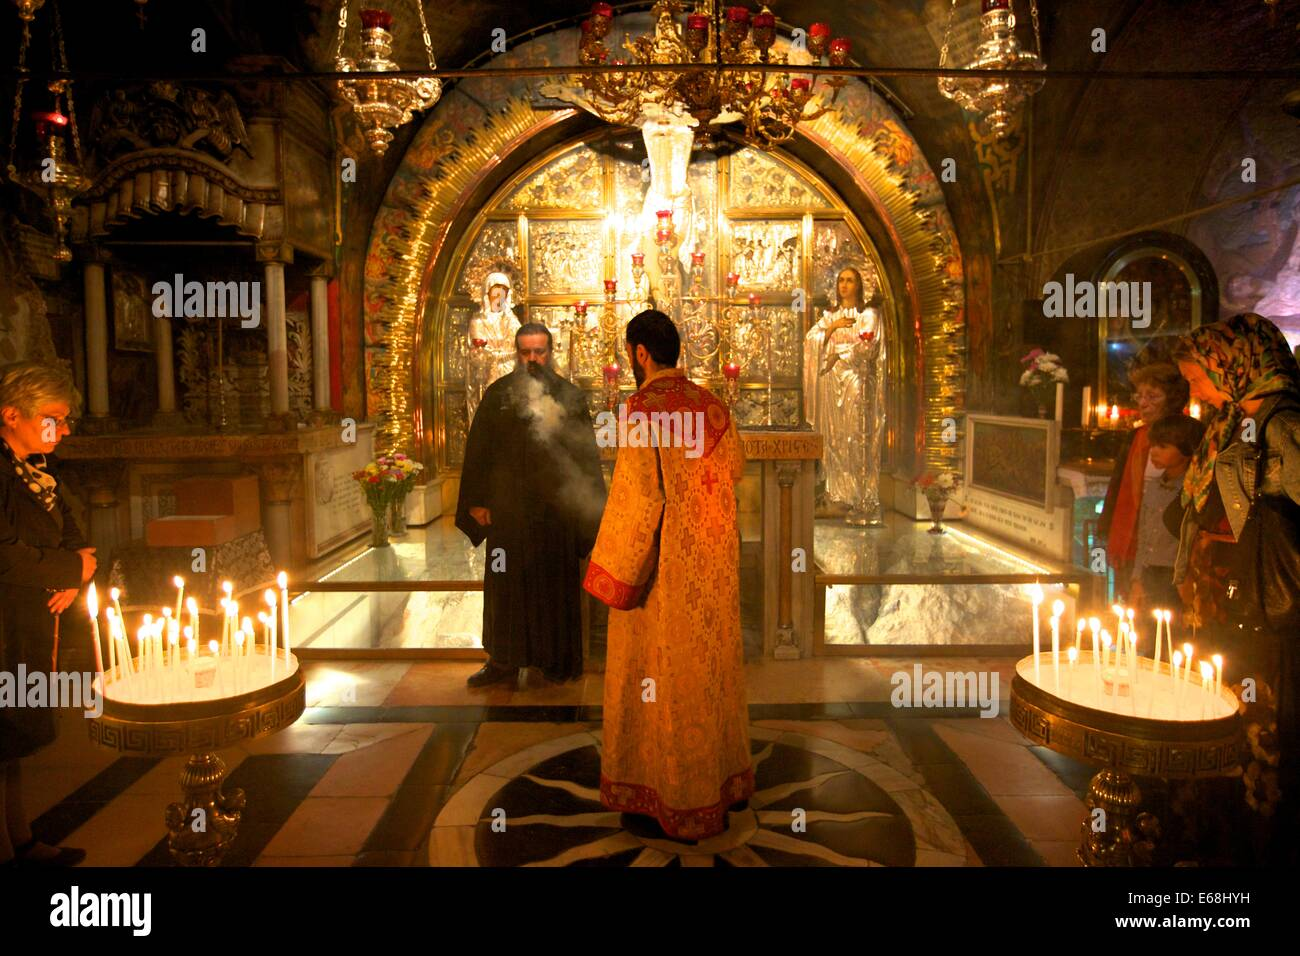 The Stone of Unction, The Church of the Holy Sepulchre, Jerusalem, Israel, Middle East - Stock Image